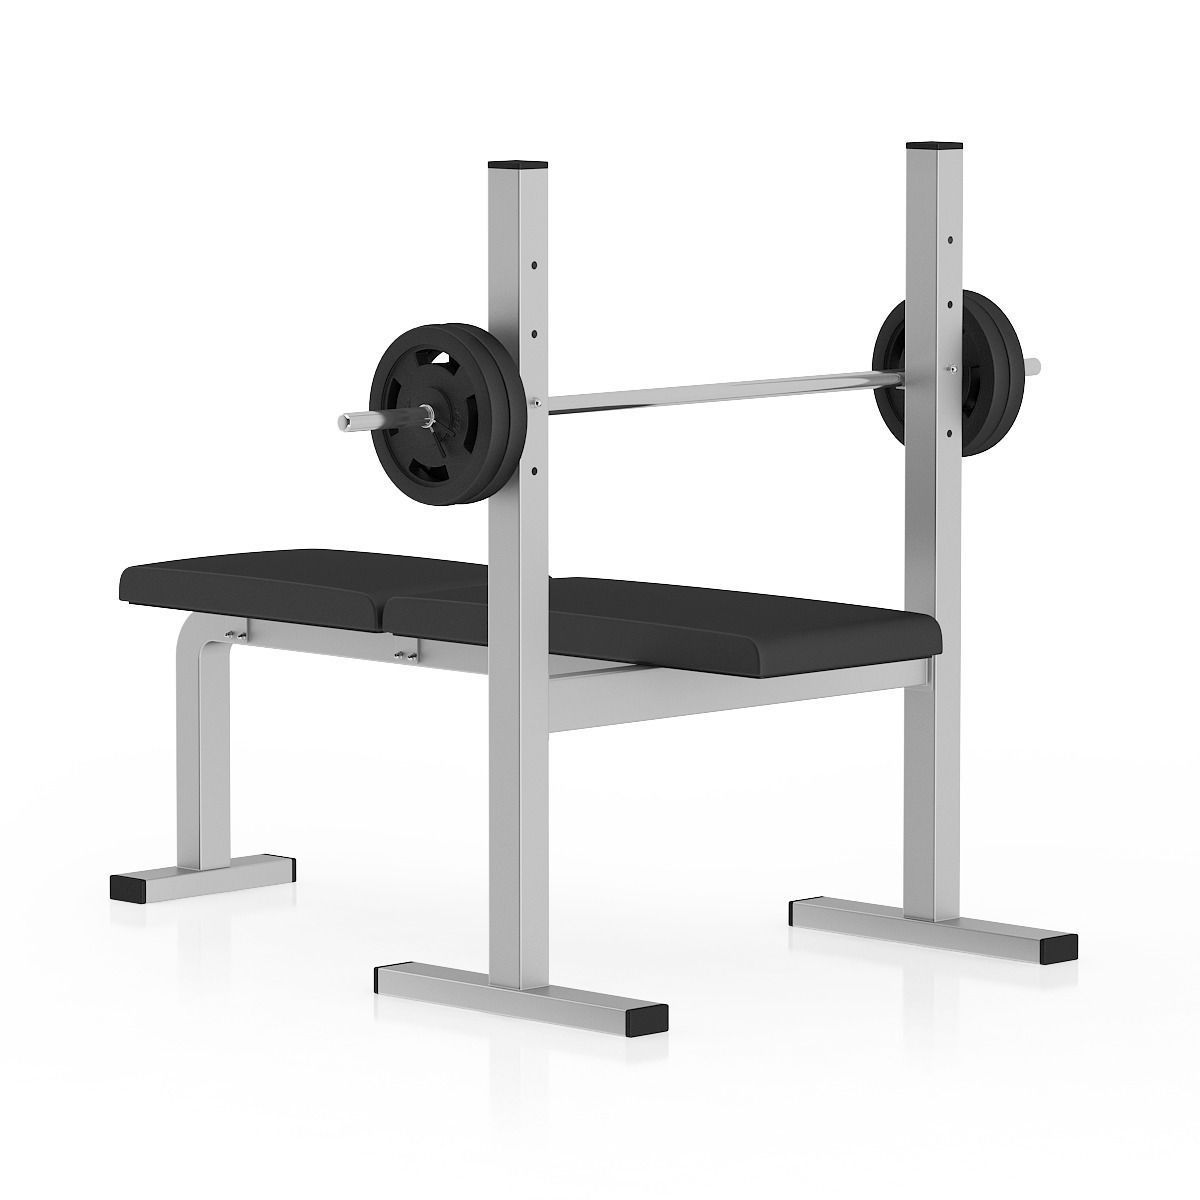 our picks weight reviews best bowflex standard adjustable selecttech guide of bench top rated